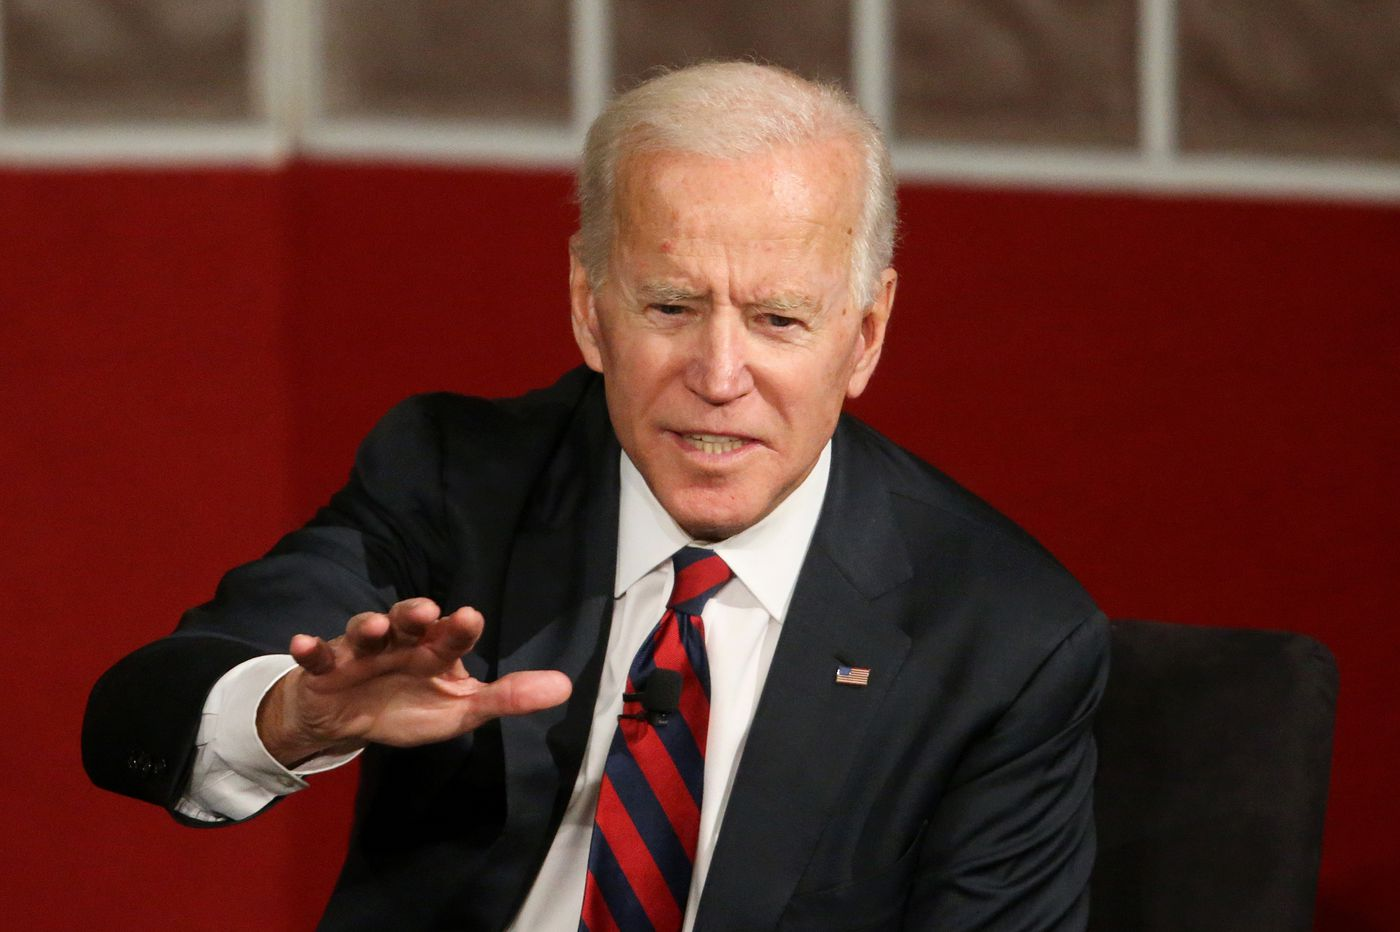 The case for and against Joe Biden's 2020 chances